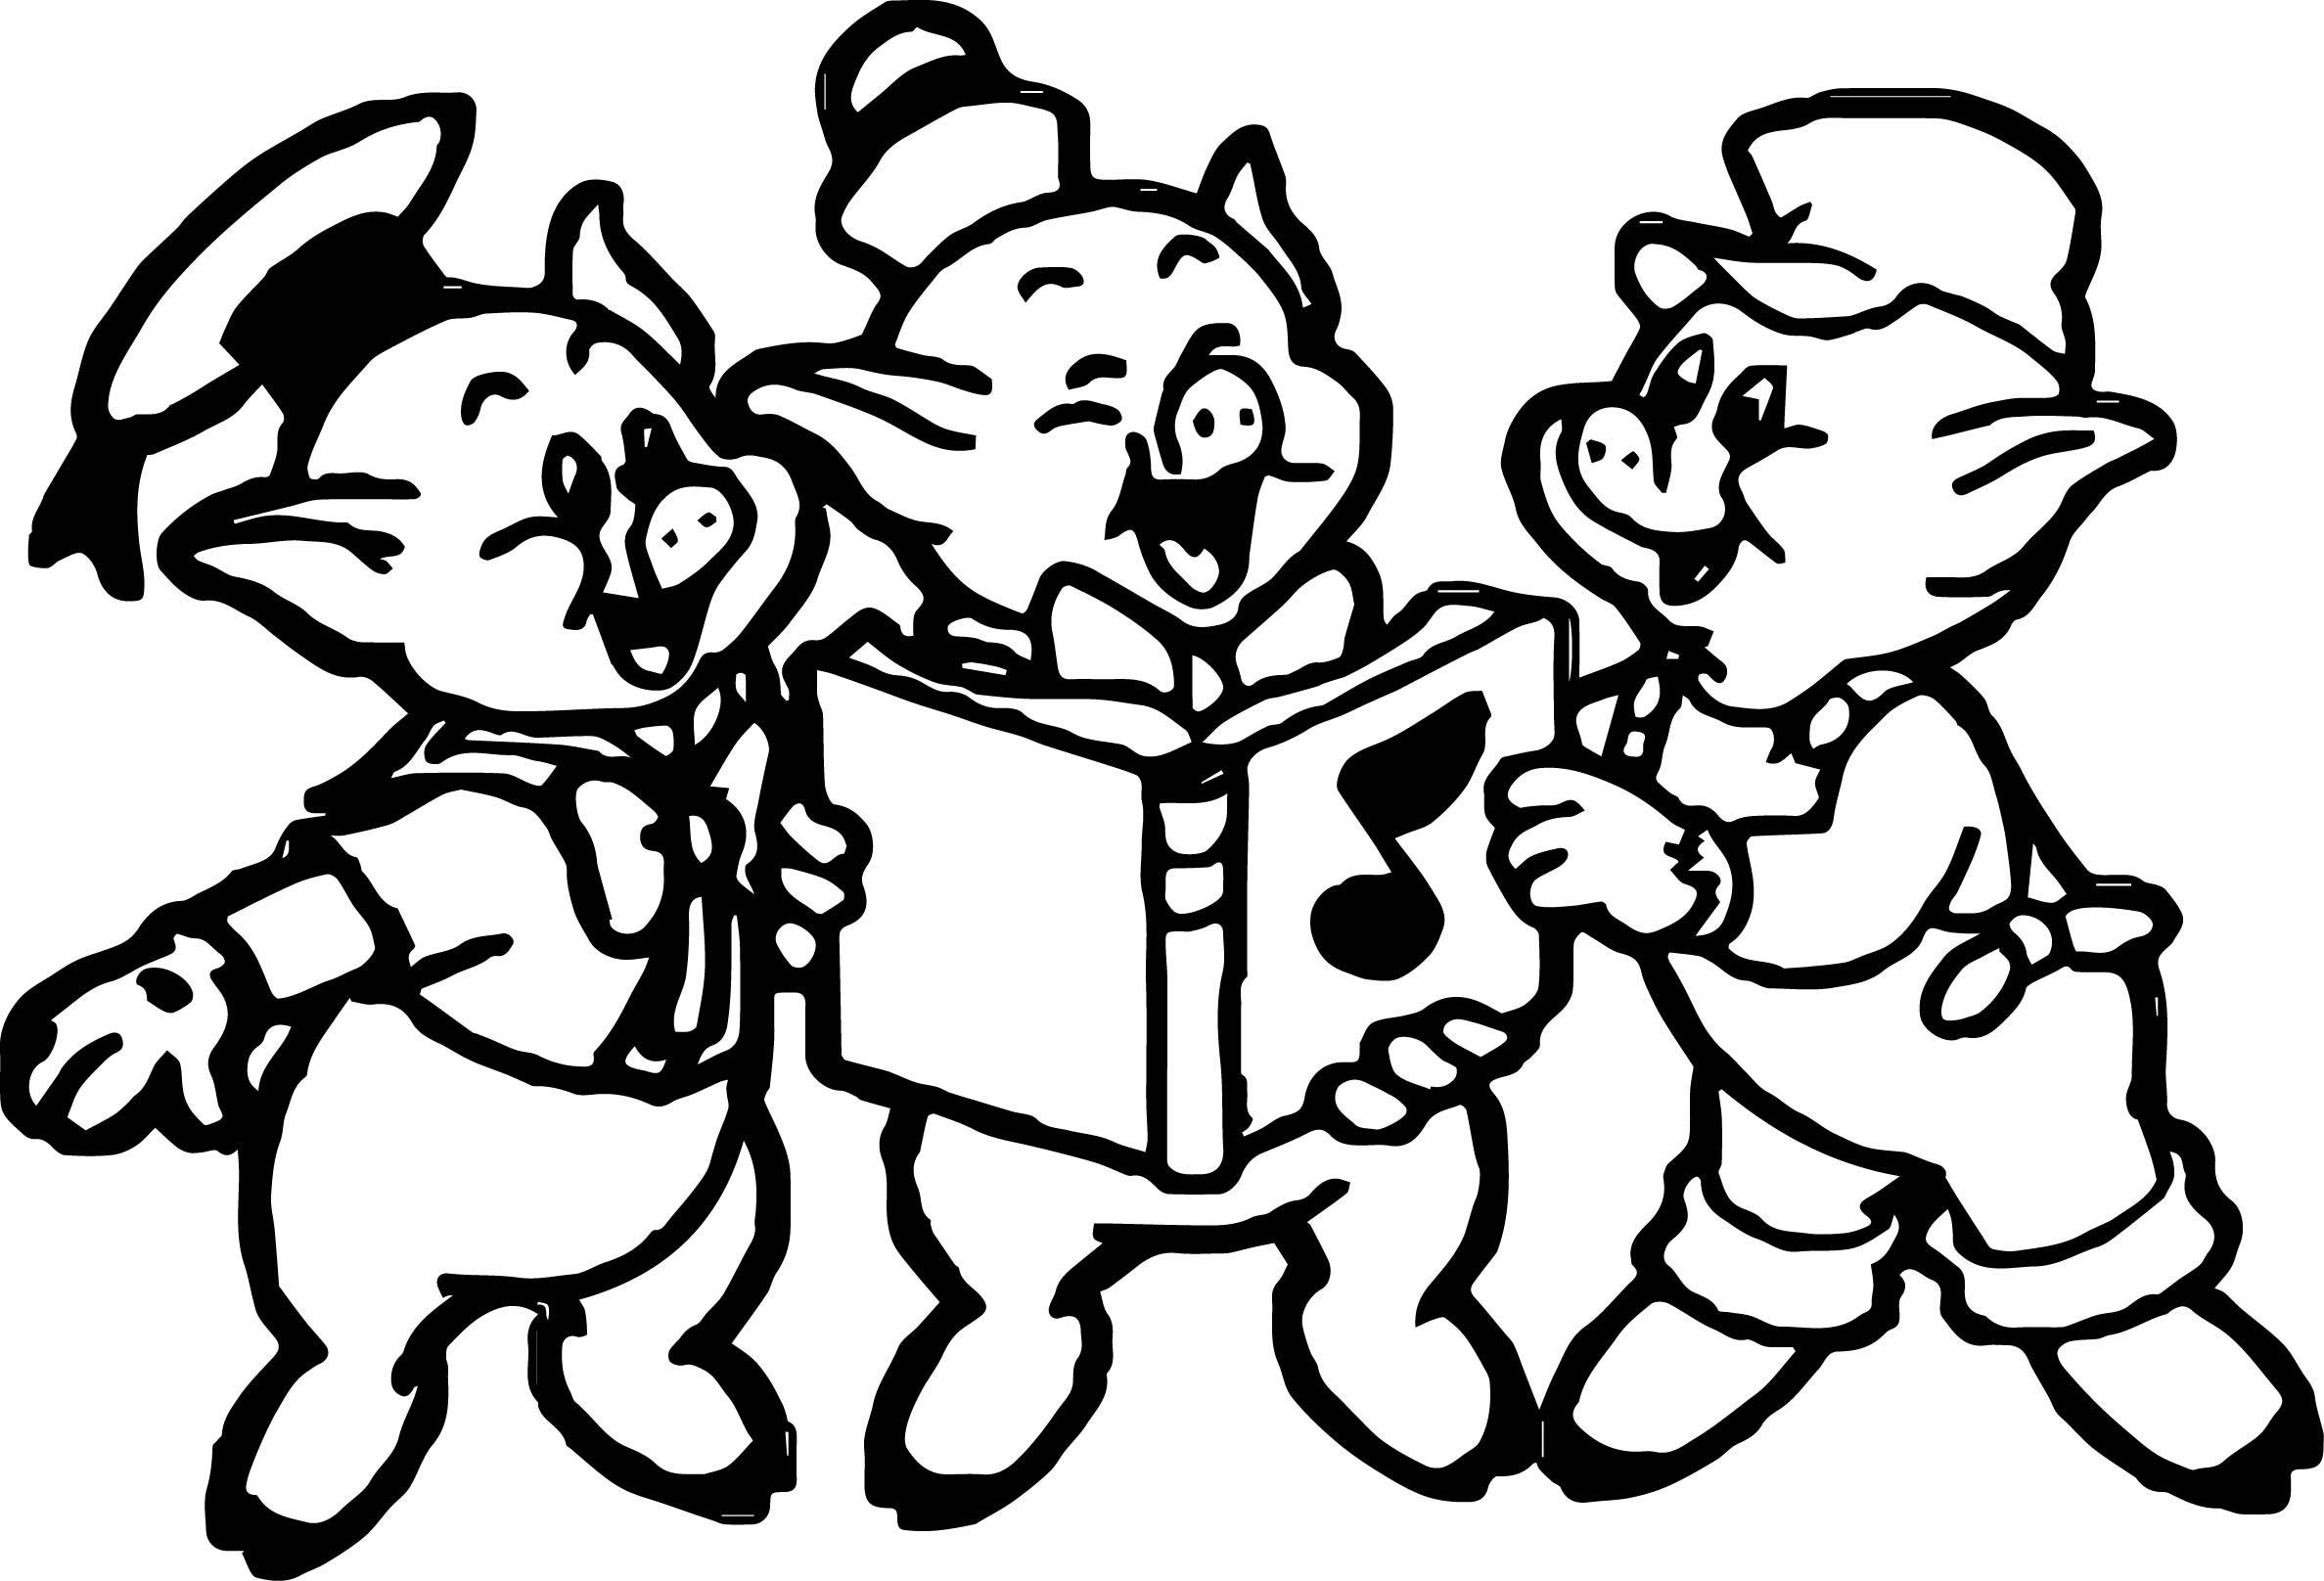 Coloring pages 3 little pigs - 3 Little Pigs Happy Coloring Page